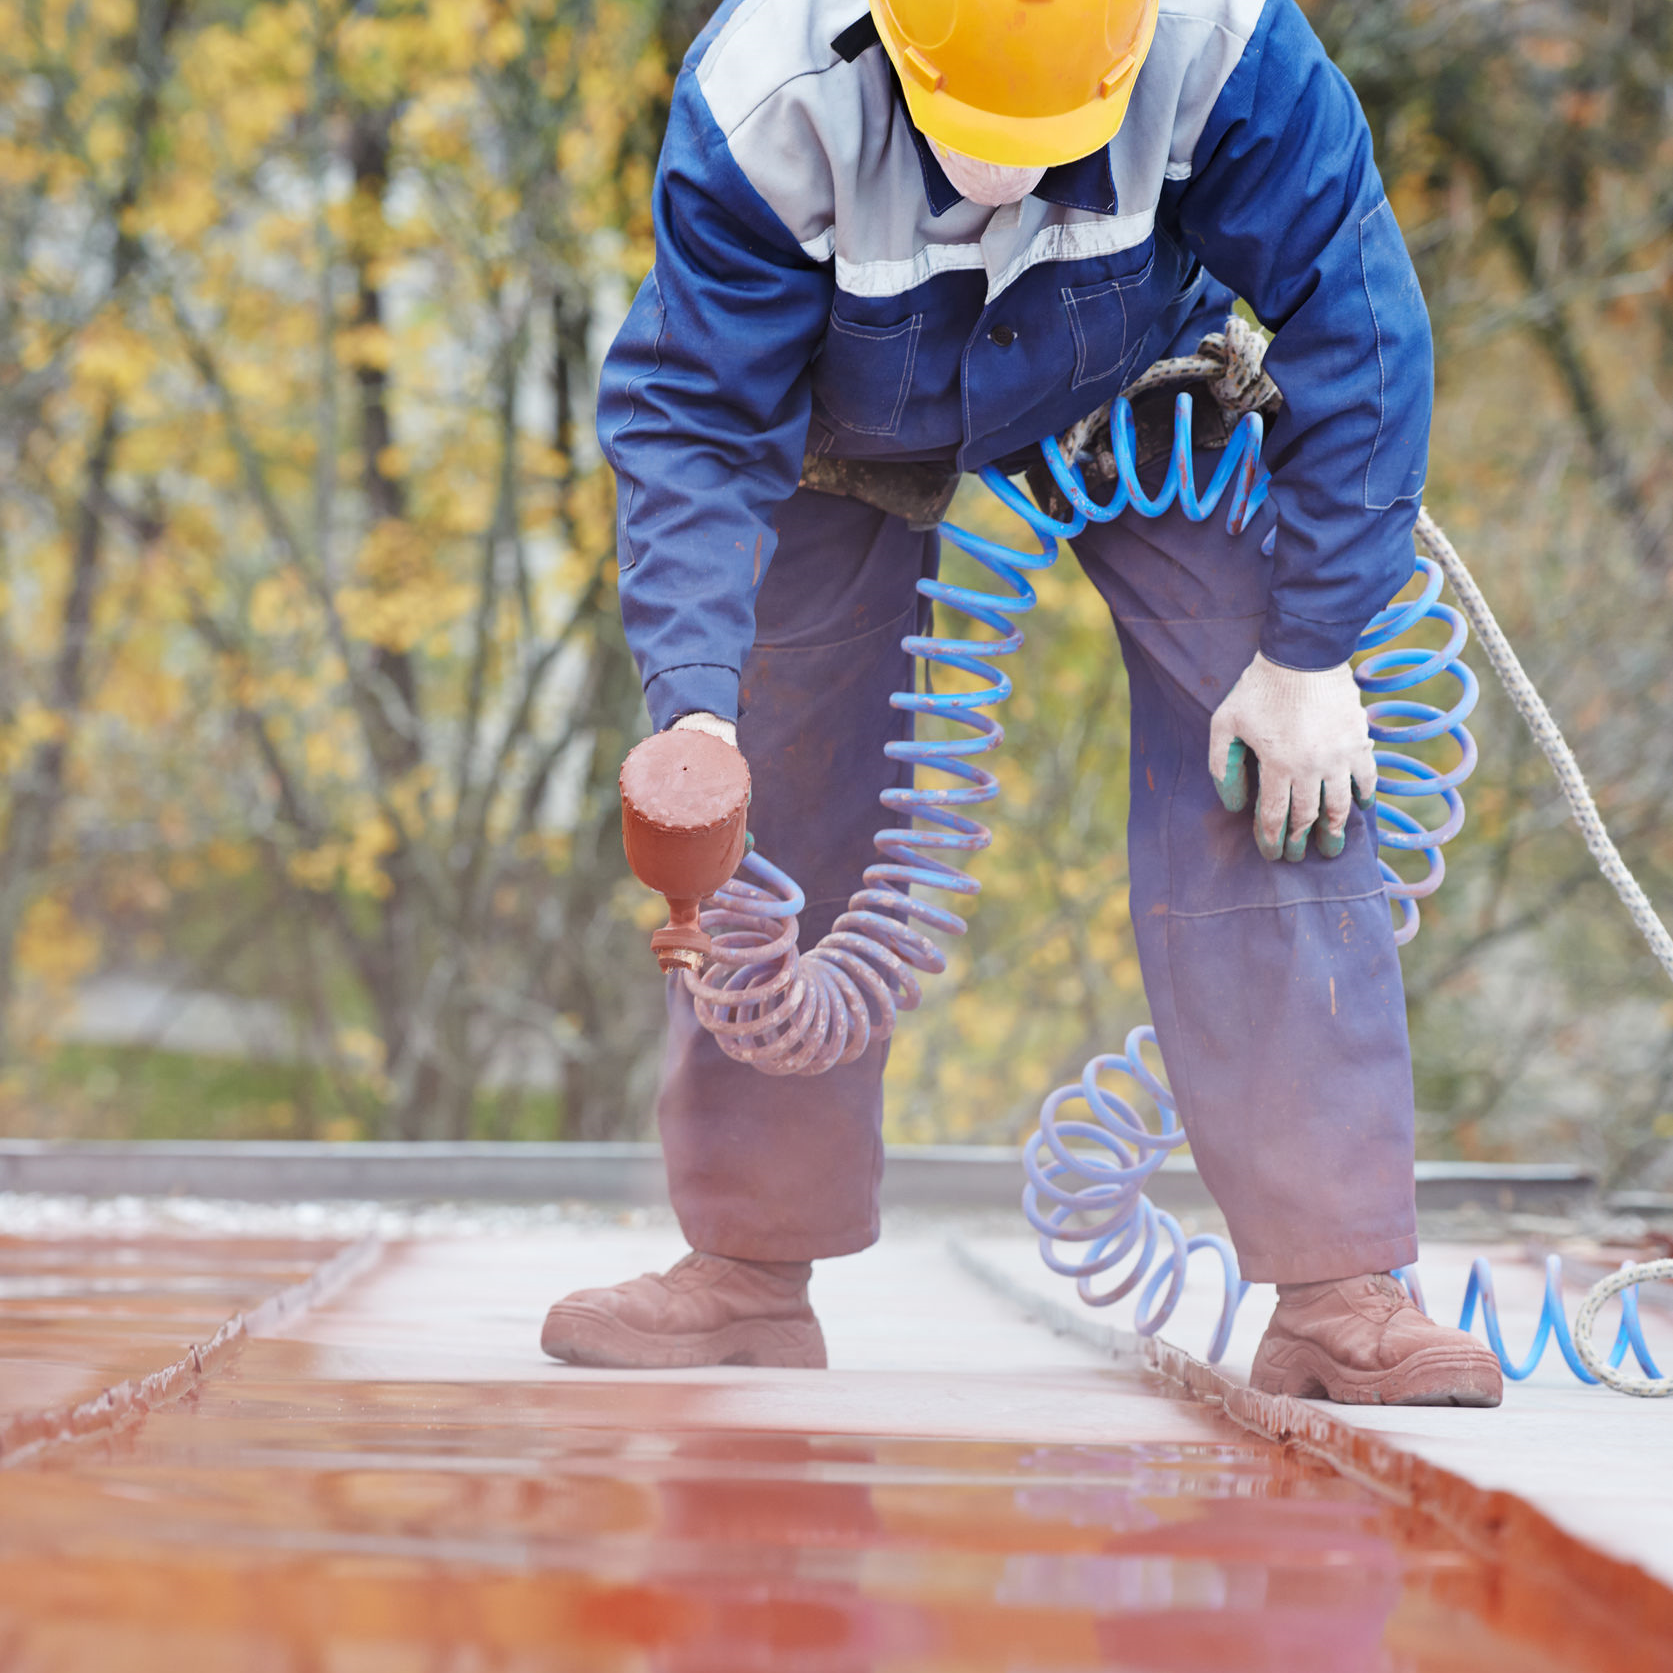 A roofer applying metal roof coating